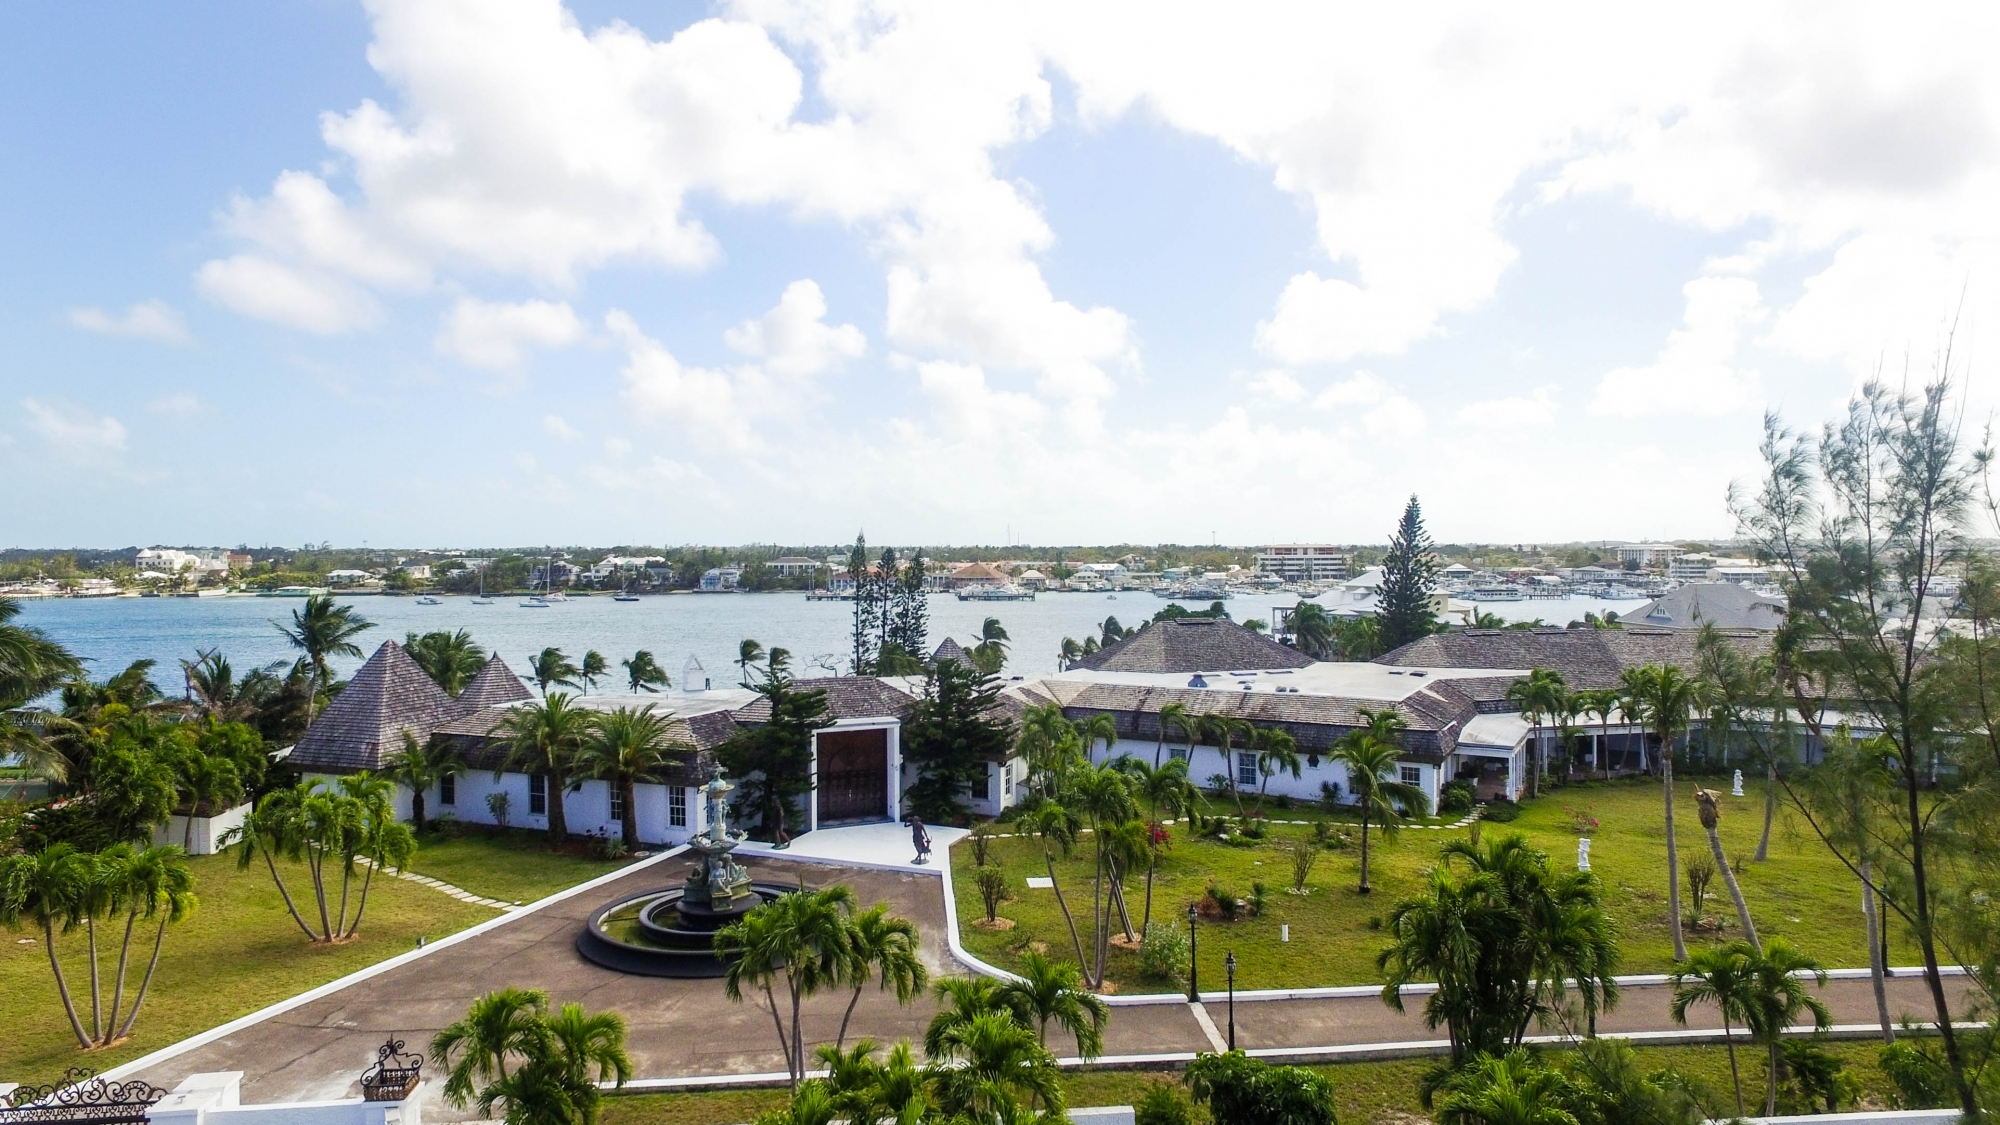 View of Nassau Harbour - 45 foot Elevation